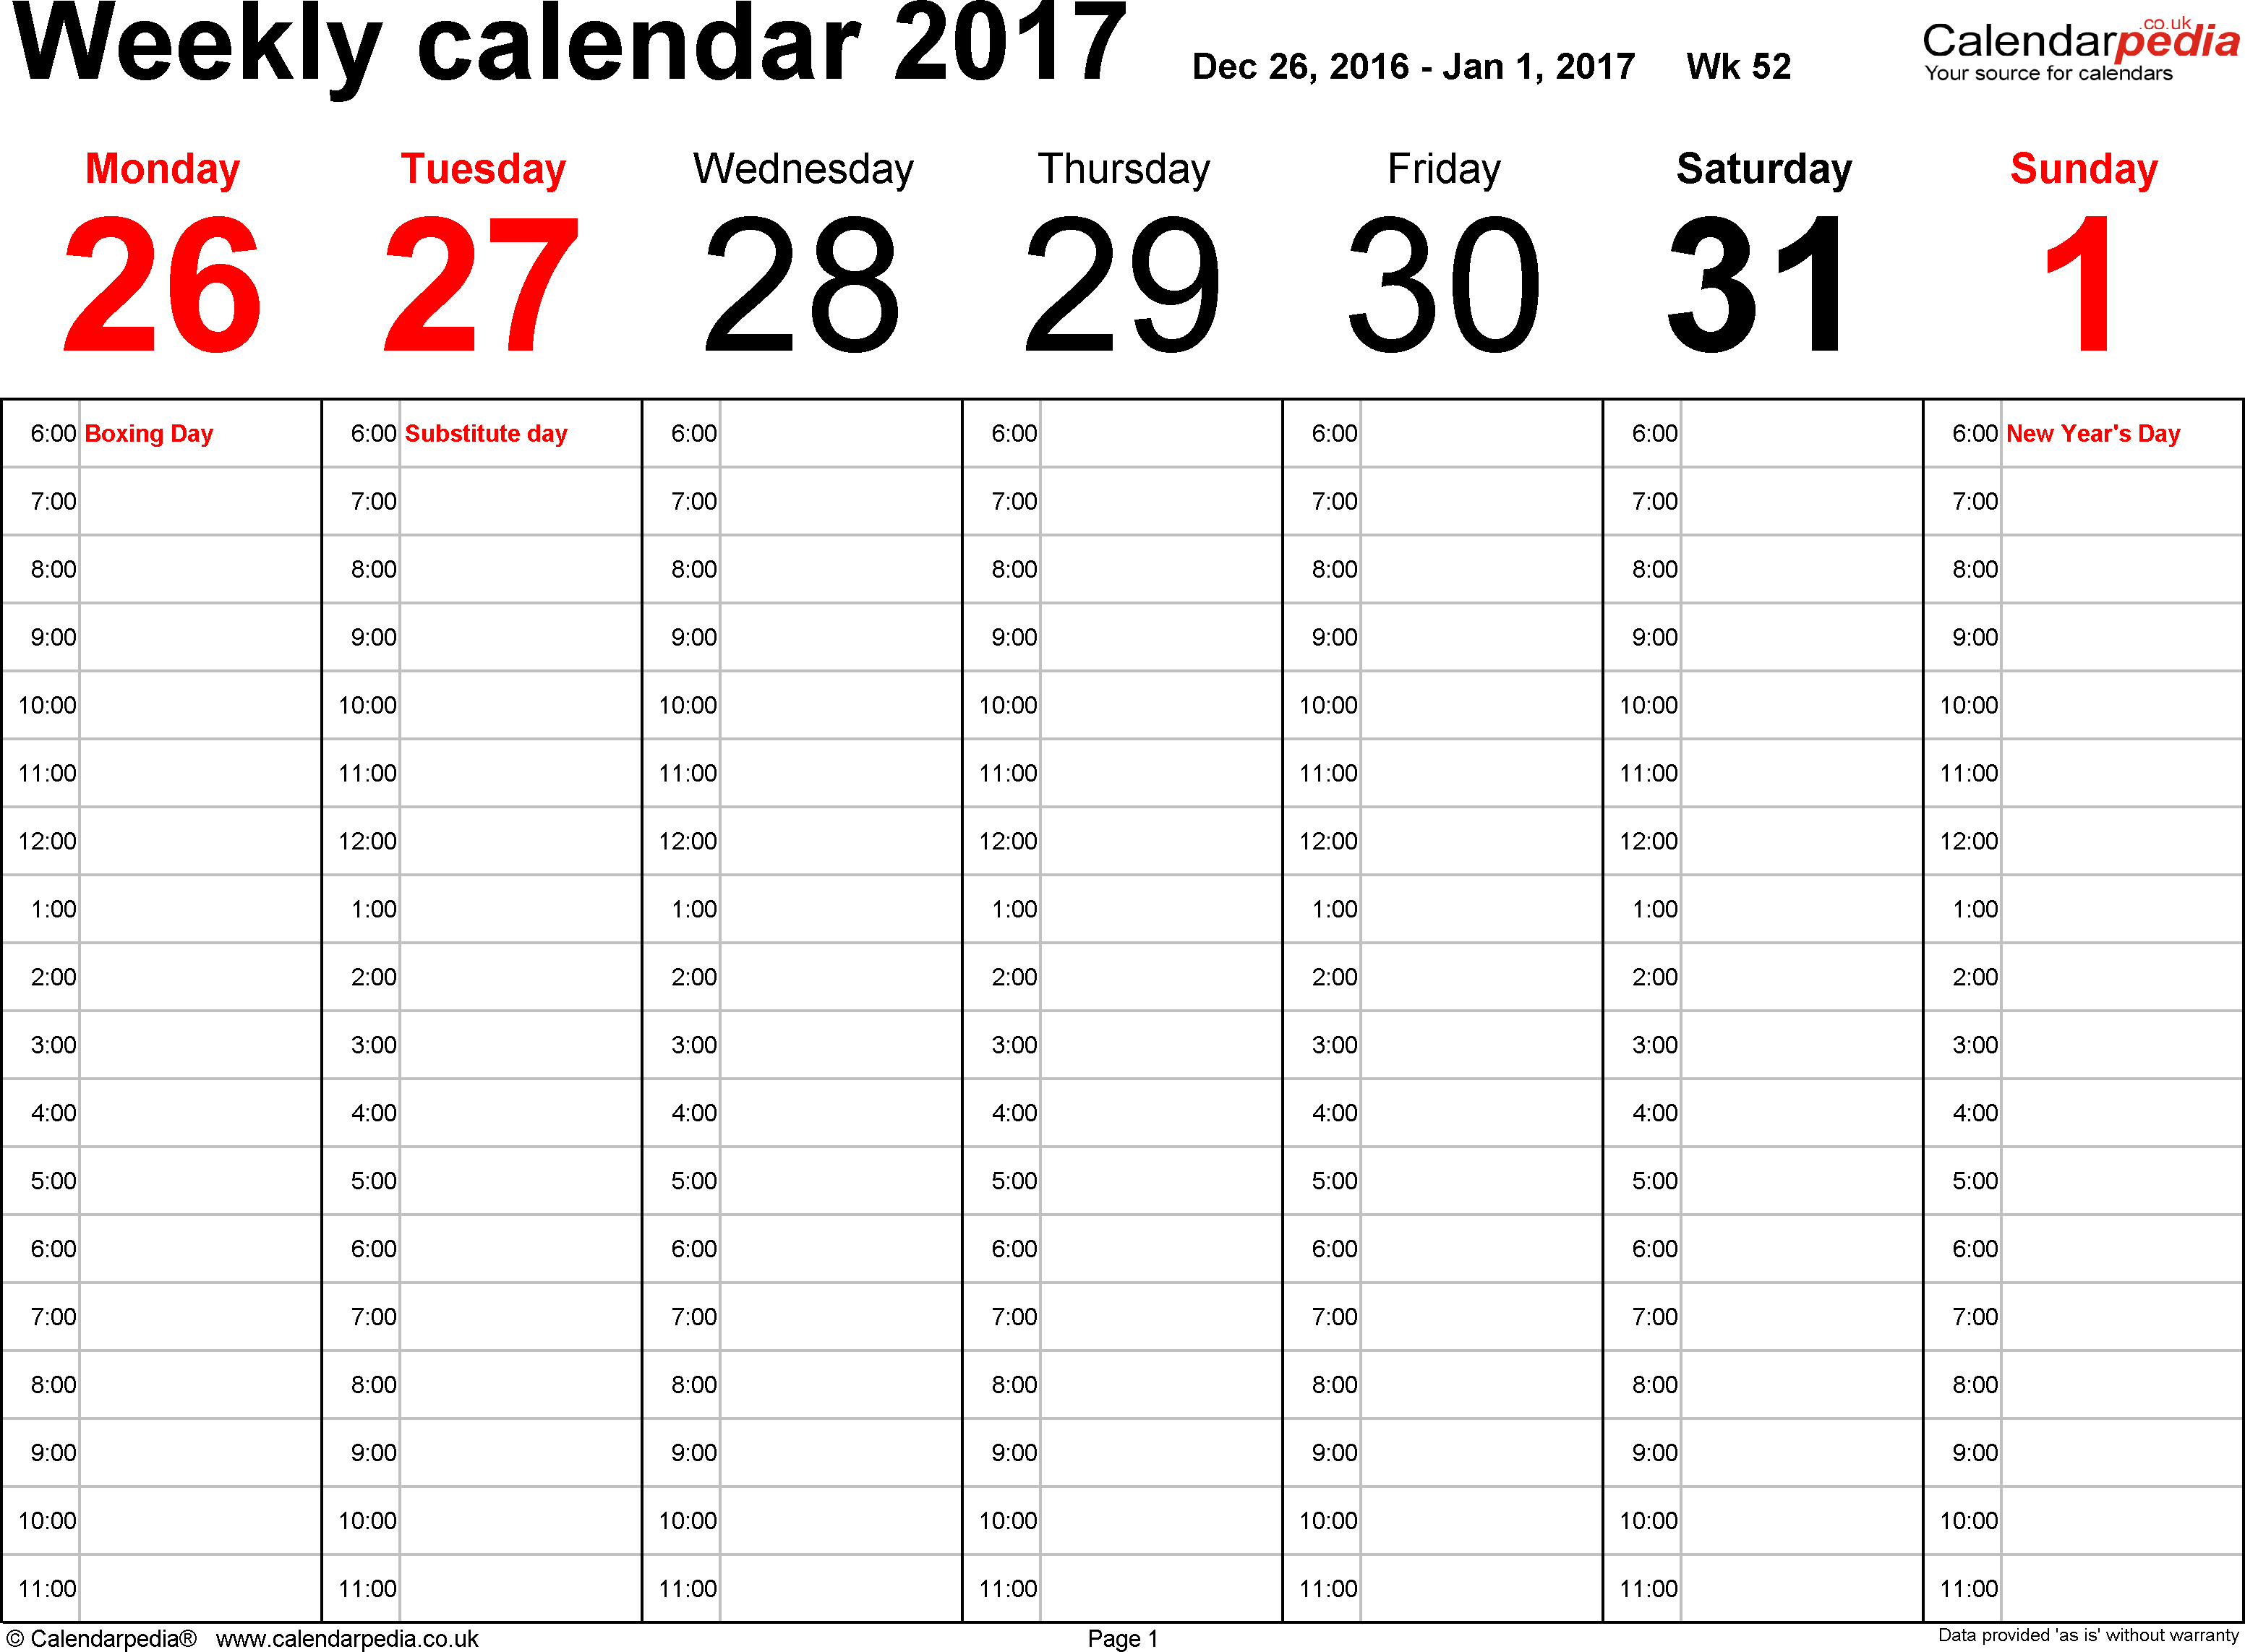 Weekly calendar 2017 UK - free printable templates for Excel